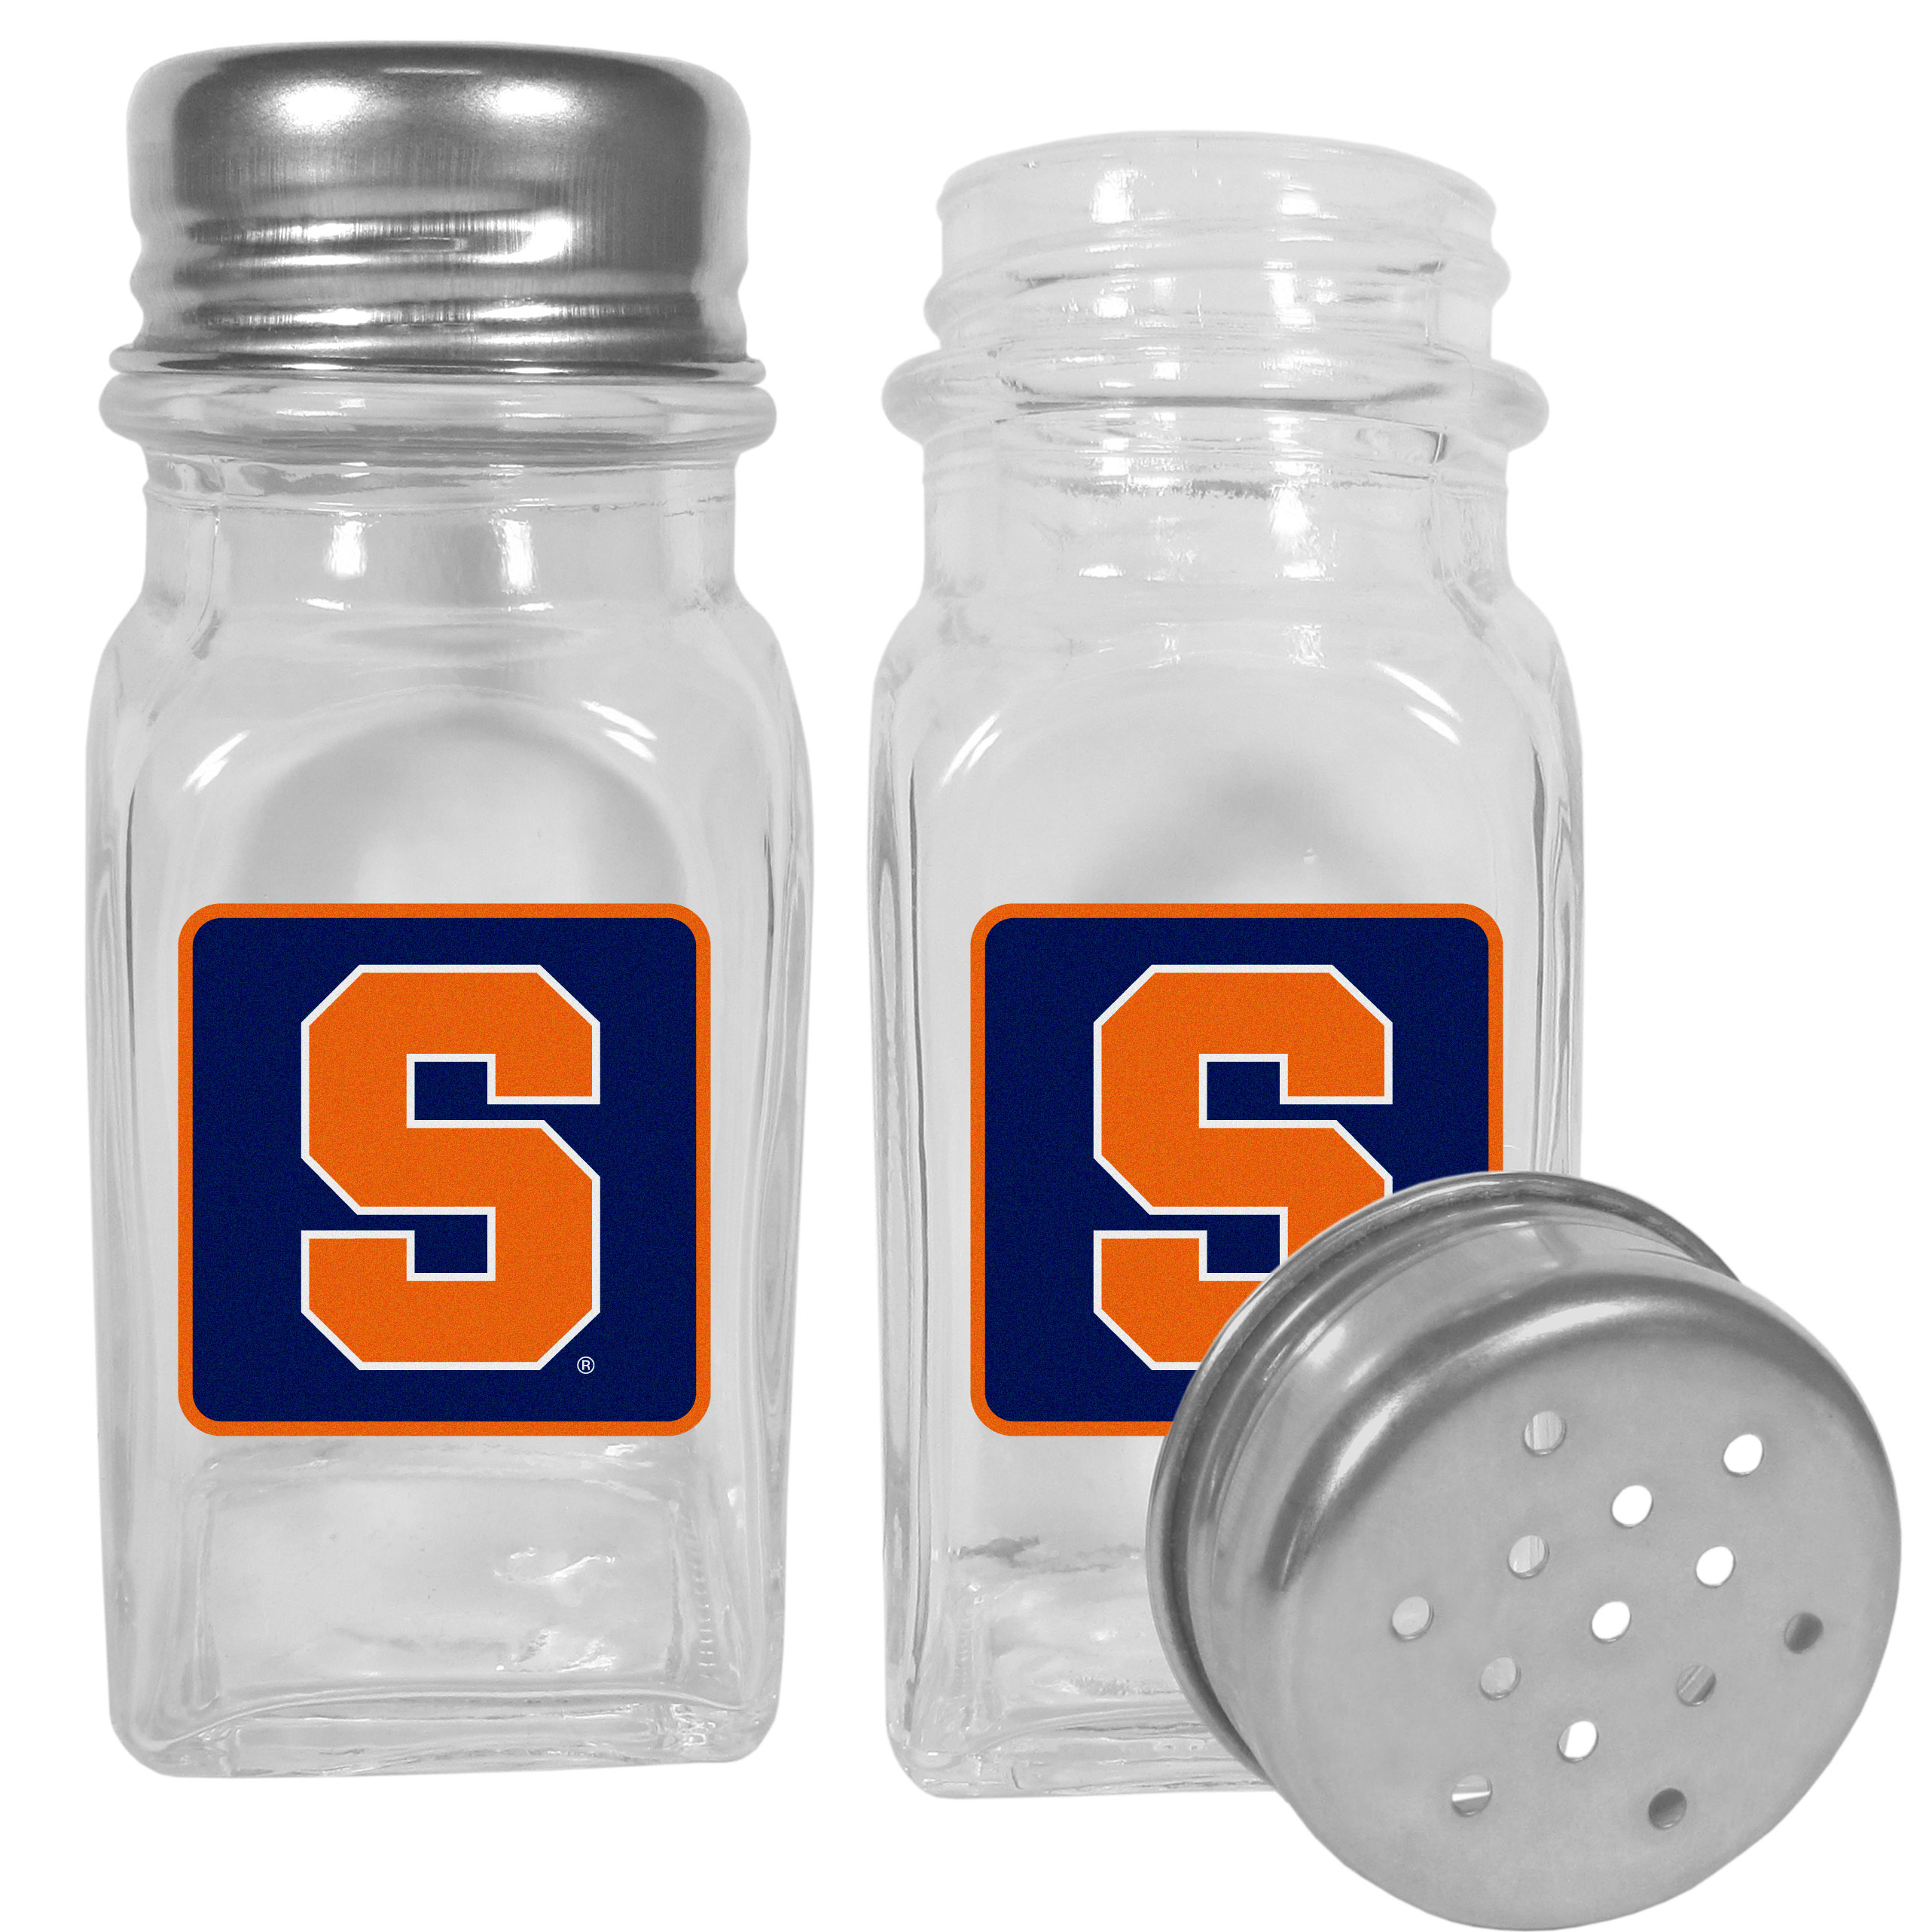 Syracuse Orange Graphics Salt and Pepper Shaker - No tailgate party is complete without your Syracuse Orange salt & pepper shakers featuring bright team logos. The diner replica salt and pepper shakers are glass with screw top lids. These team shakers are a great grill accessory whether you are barbecuing on the patio, picnicing or having a game day party.